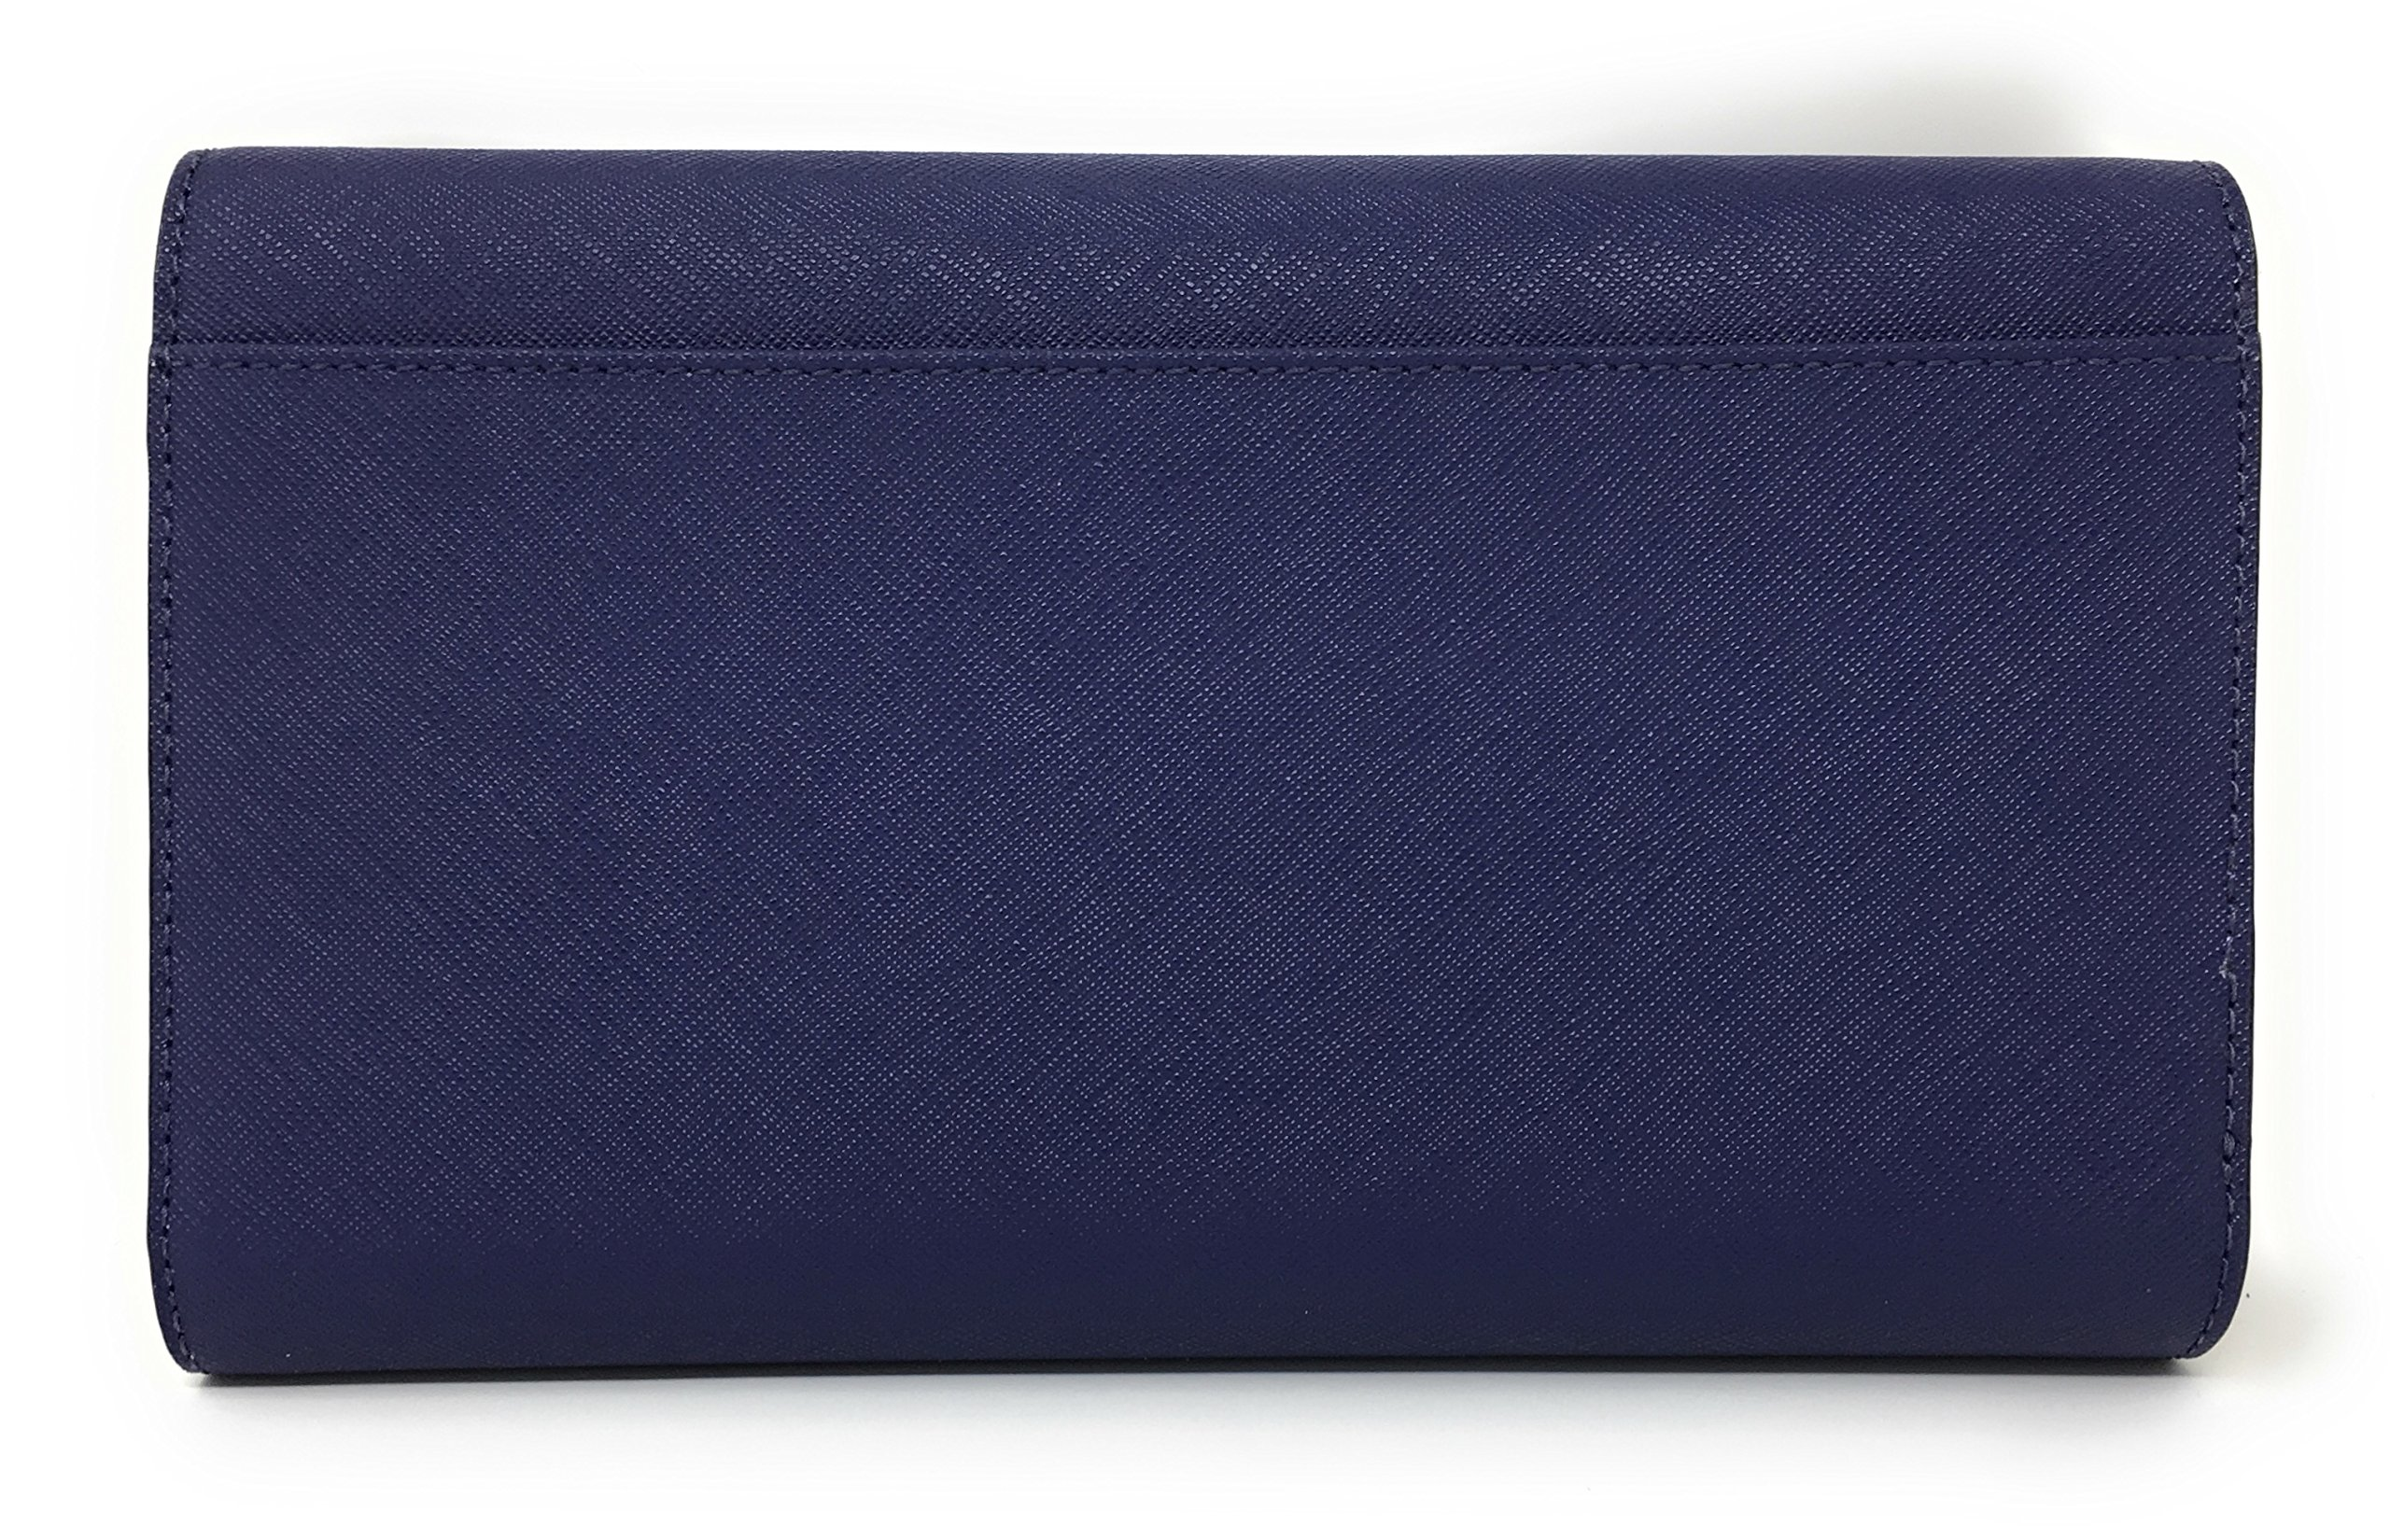 Kate Spade New York Mikas Pond Phoenix Trifold Leather Wallet (Sapphire) by Kate Spade New York (Image #4)